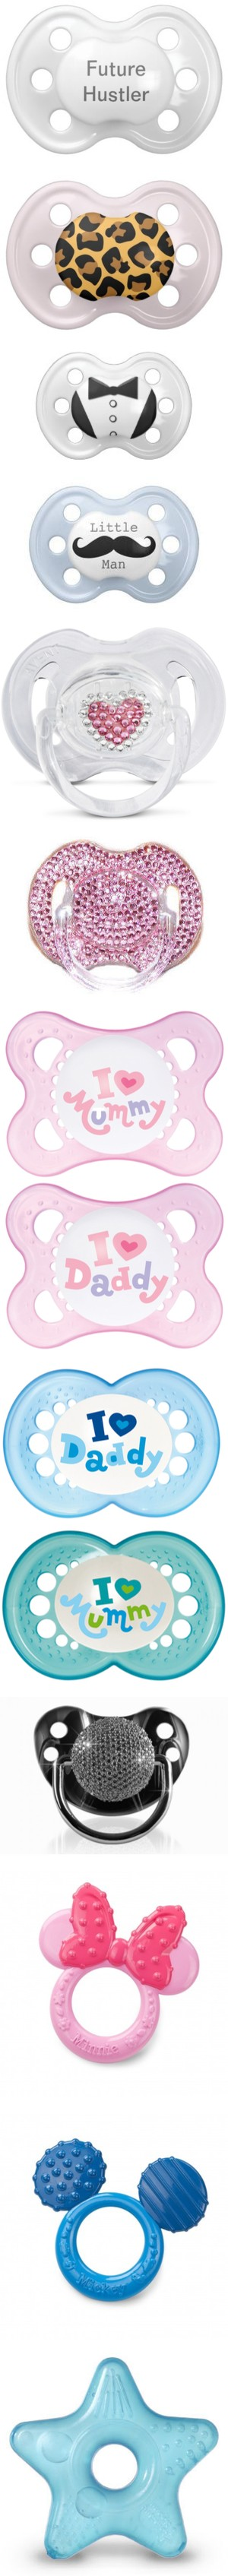 """""""The Ultimate 'Baby Stuff' Collection"""" by dazzlingdondiva"""